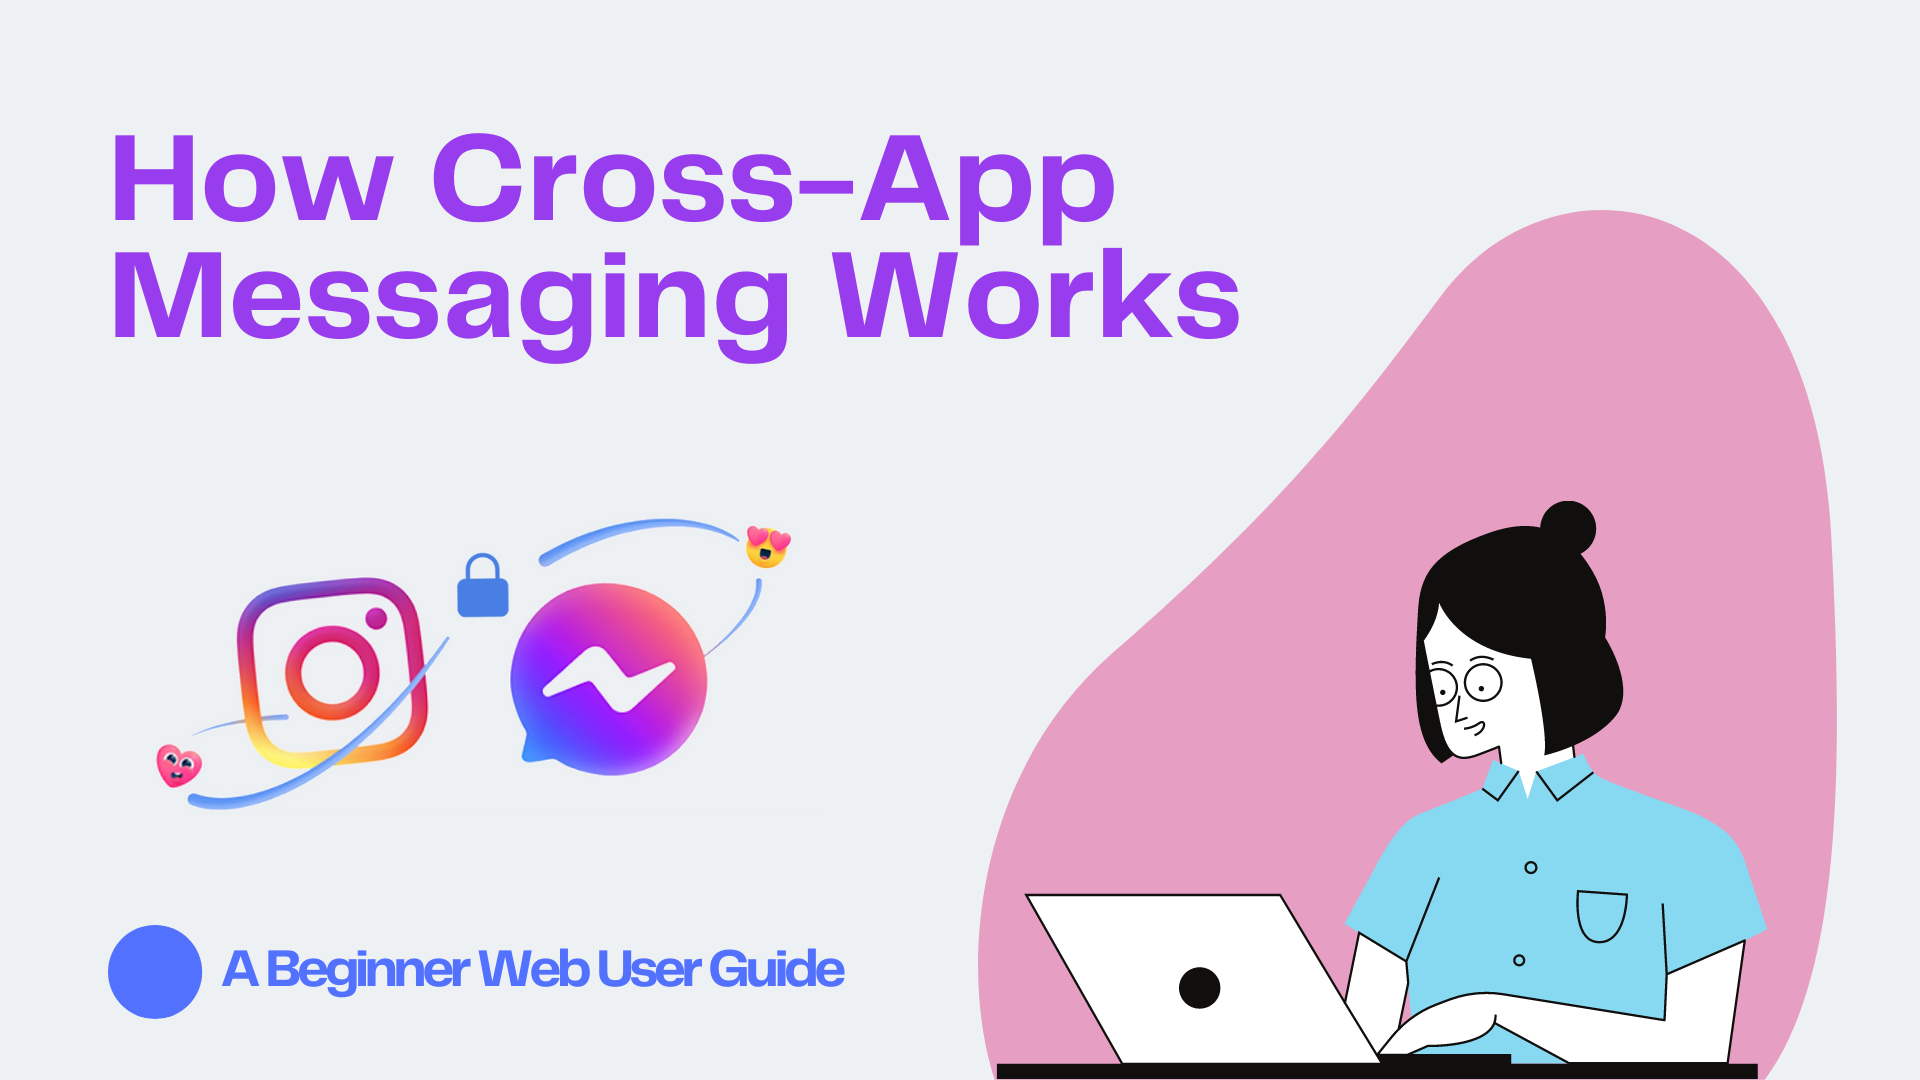 What Is Cross-App Messaging?